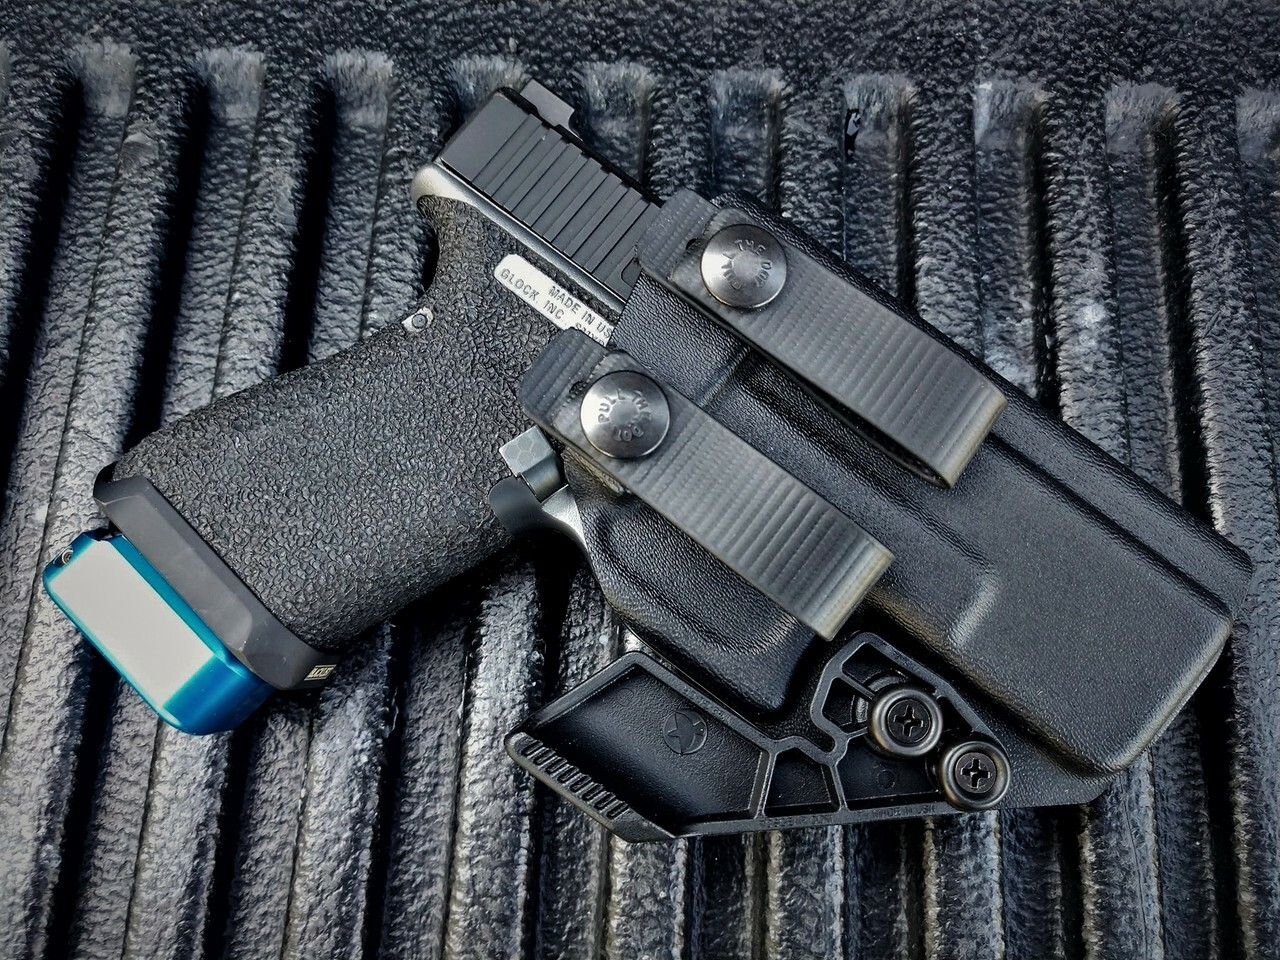 Glock 19 Appendix Carry Holster with Soft Loops